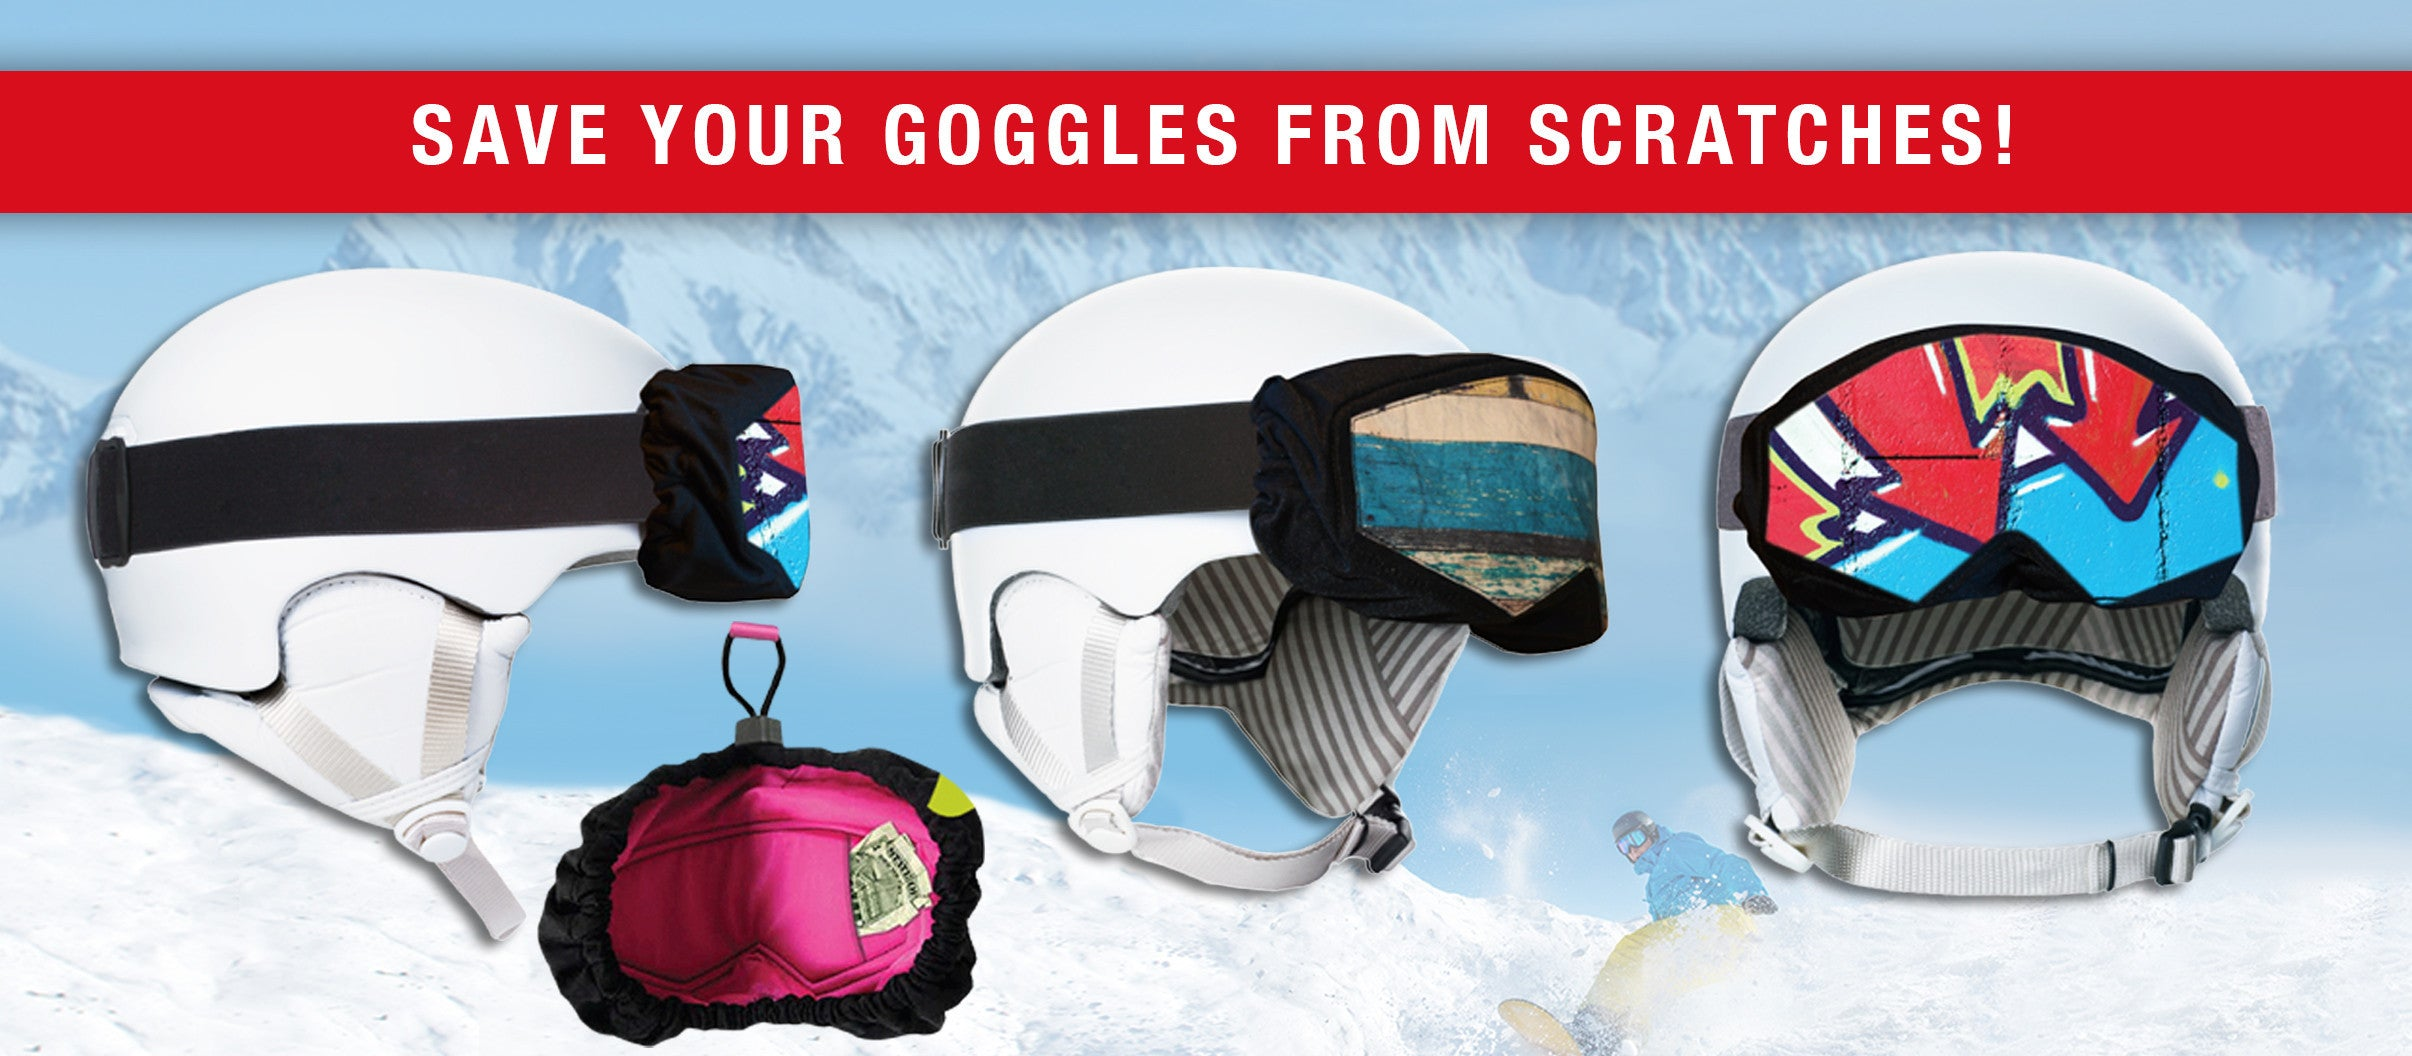 Goggle Bags and Google Cases